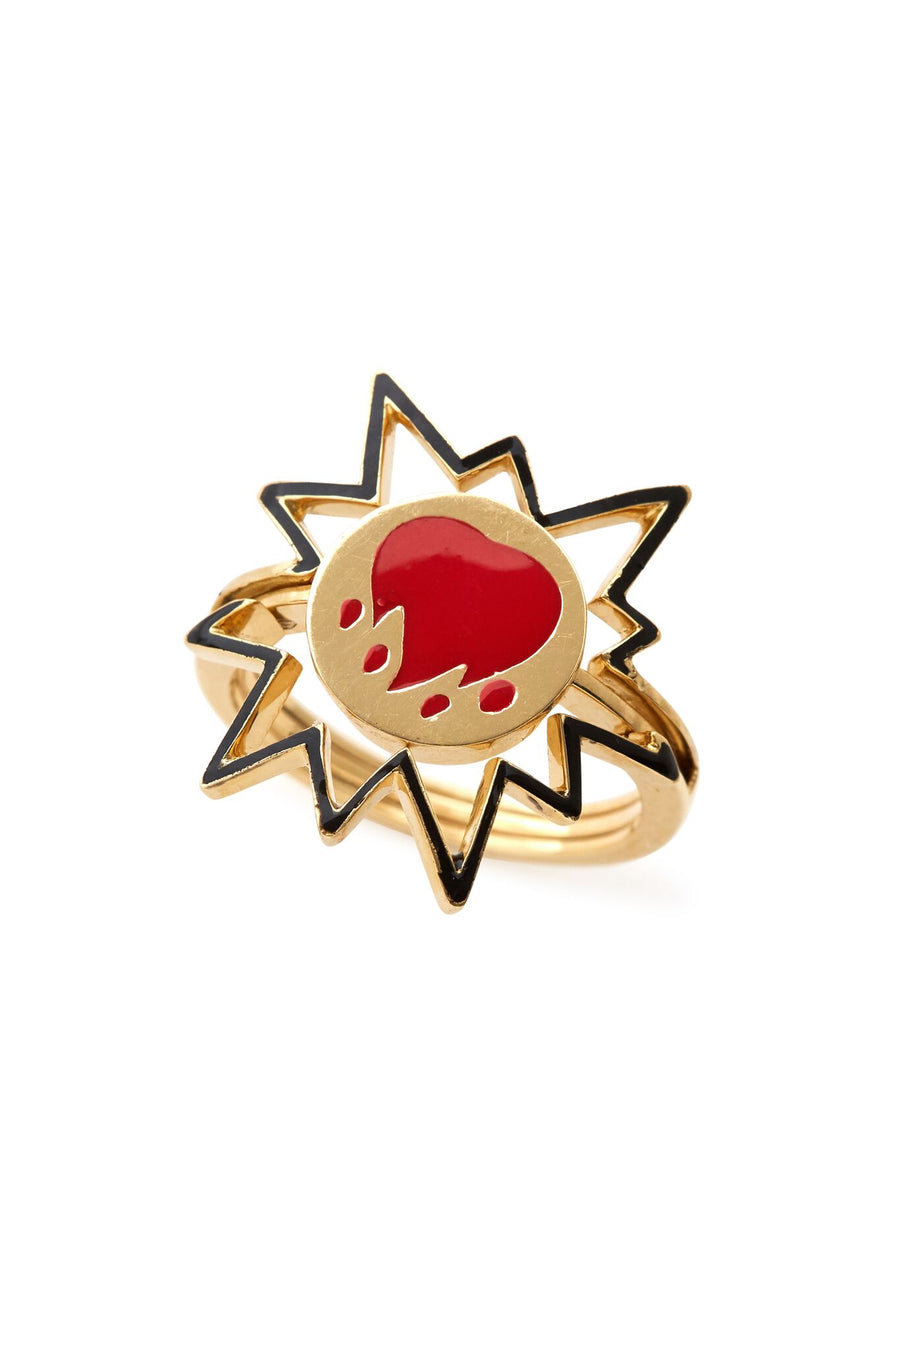 18K Gold & Black Enamel Interchangeable Emoji Ring - SZ 7.5